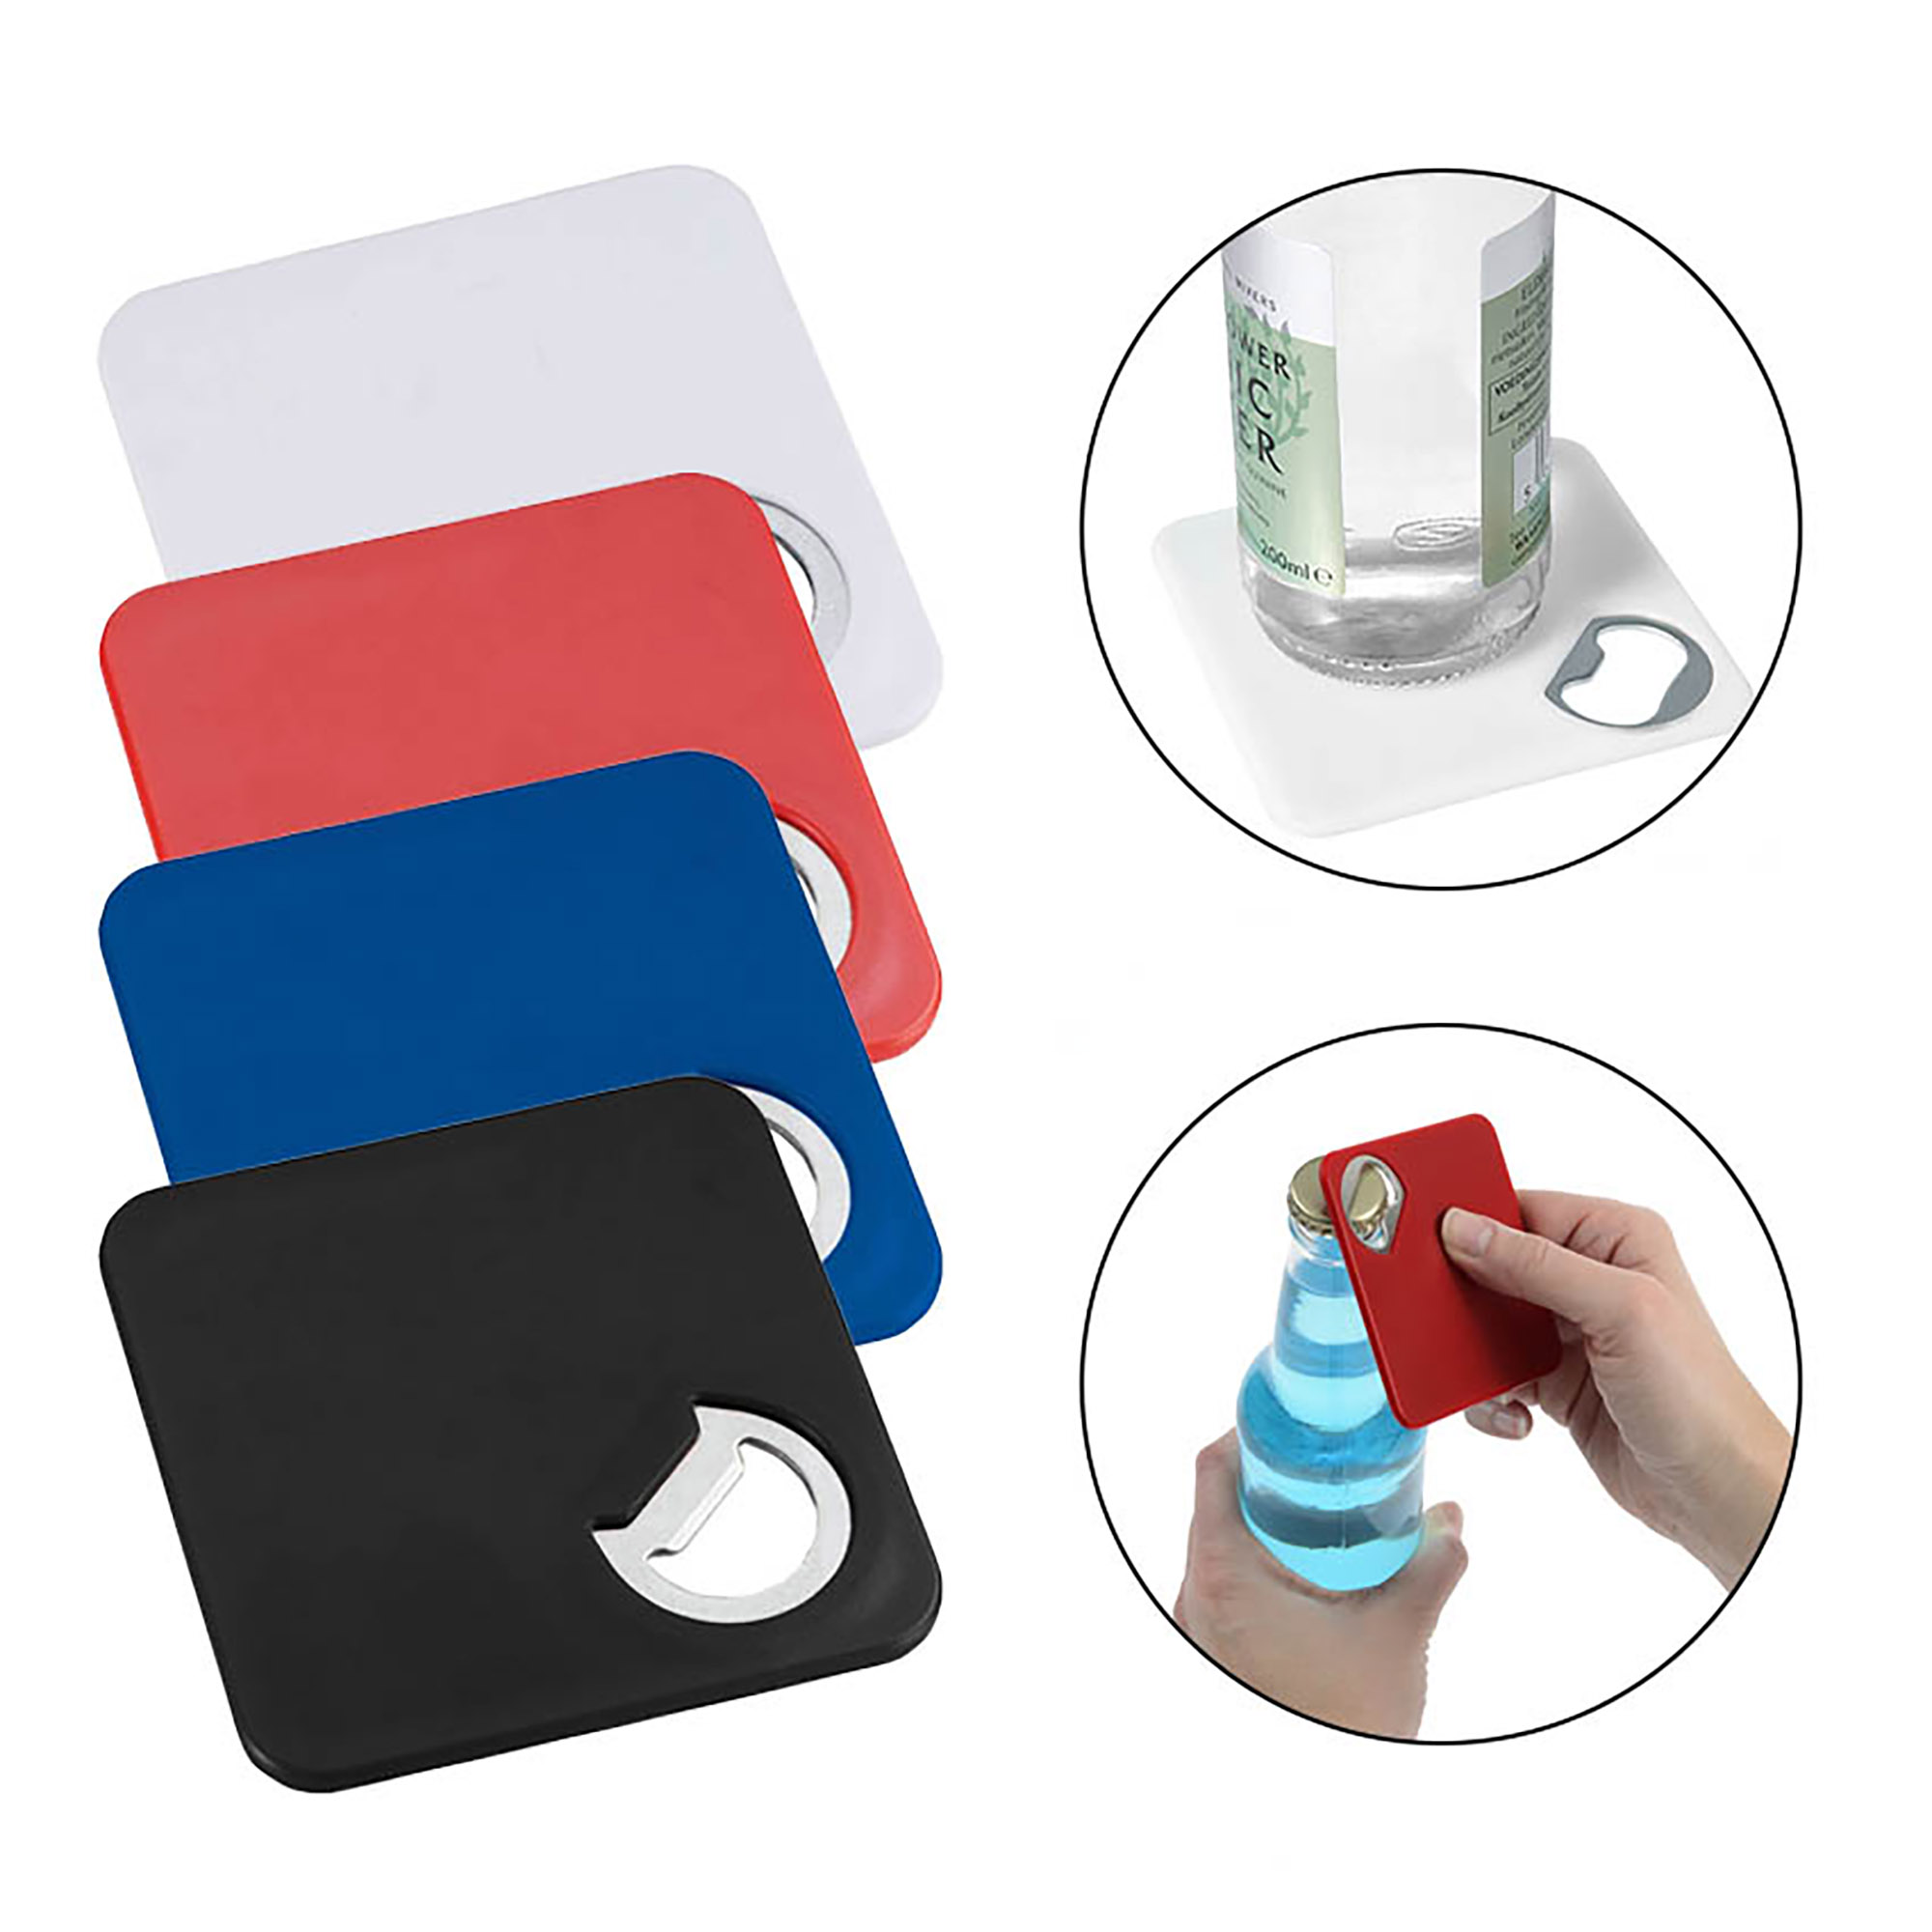 BOTTLE OPENER COASTER - 1 Colour Print, From $0.89